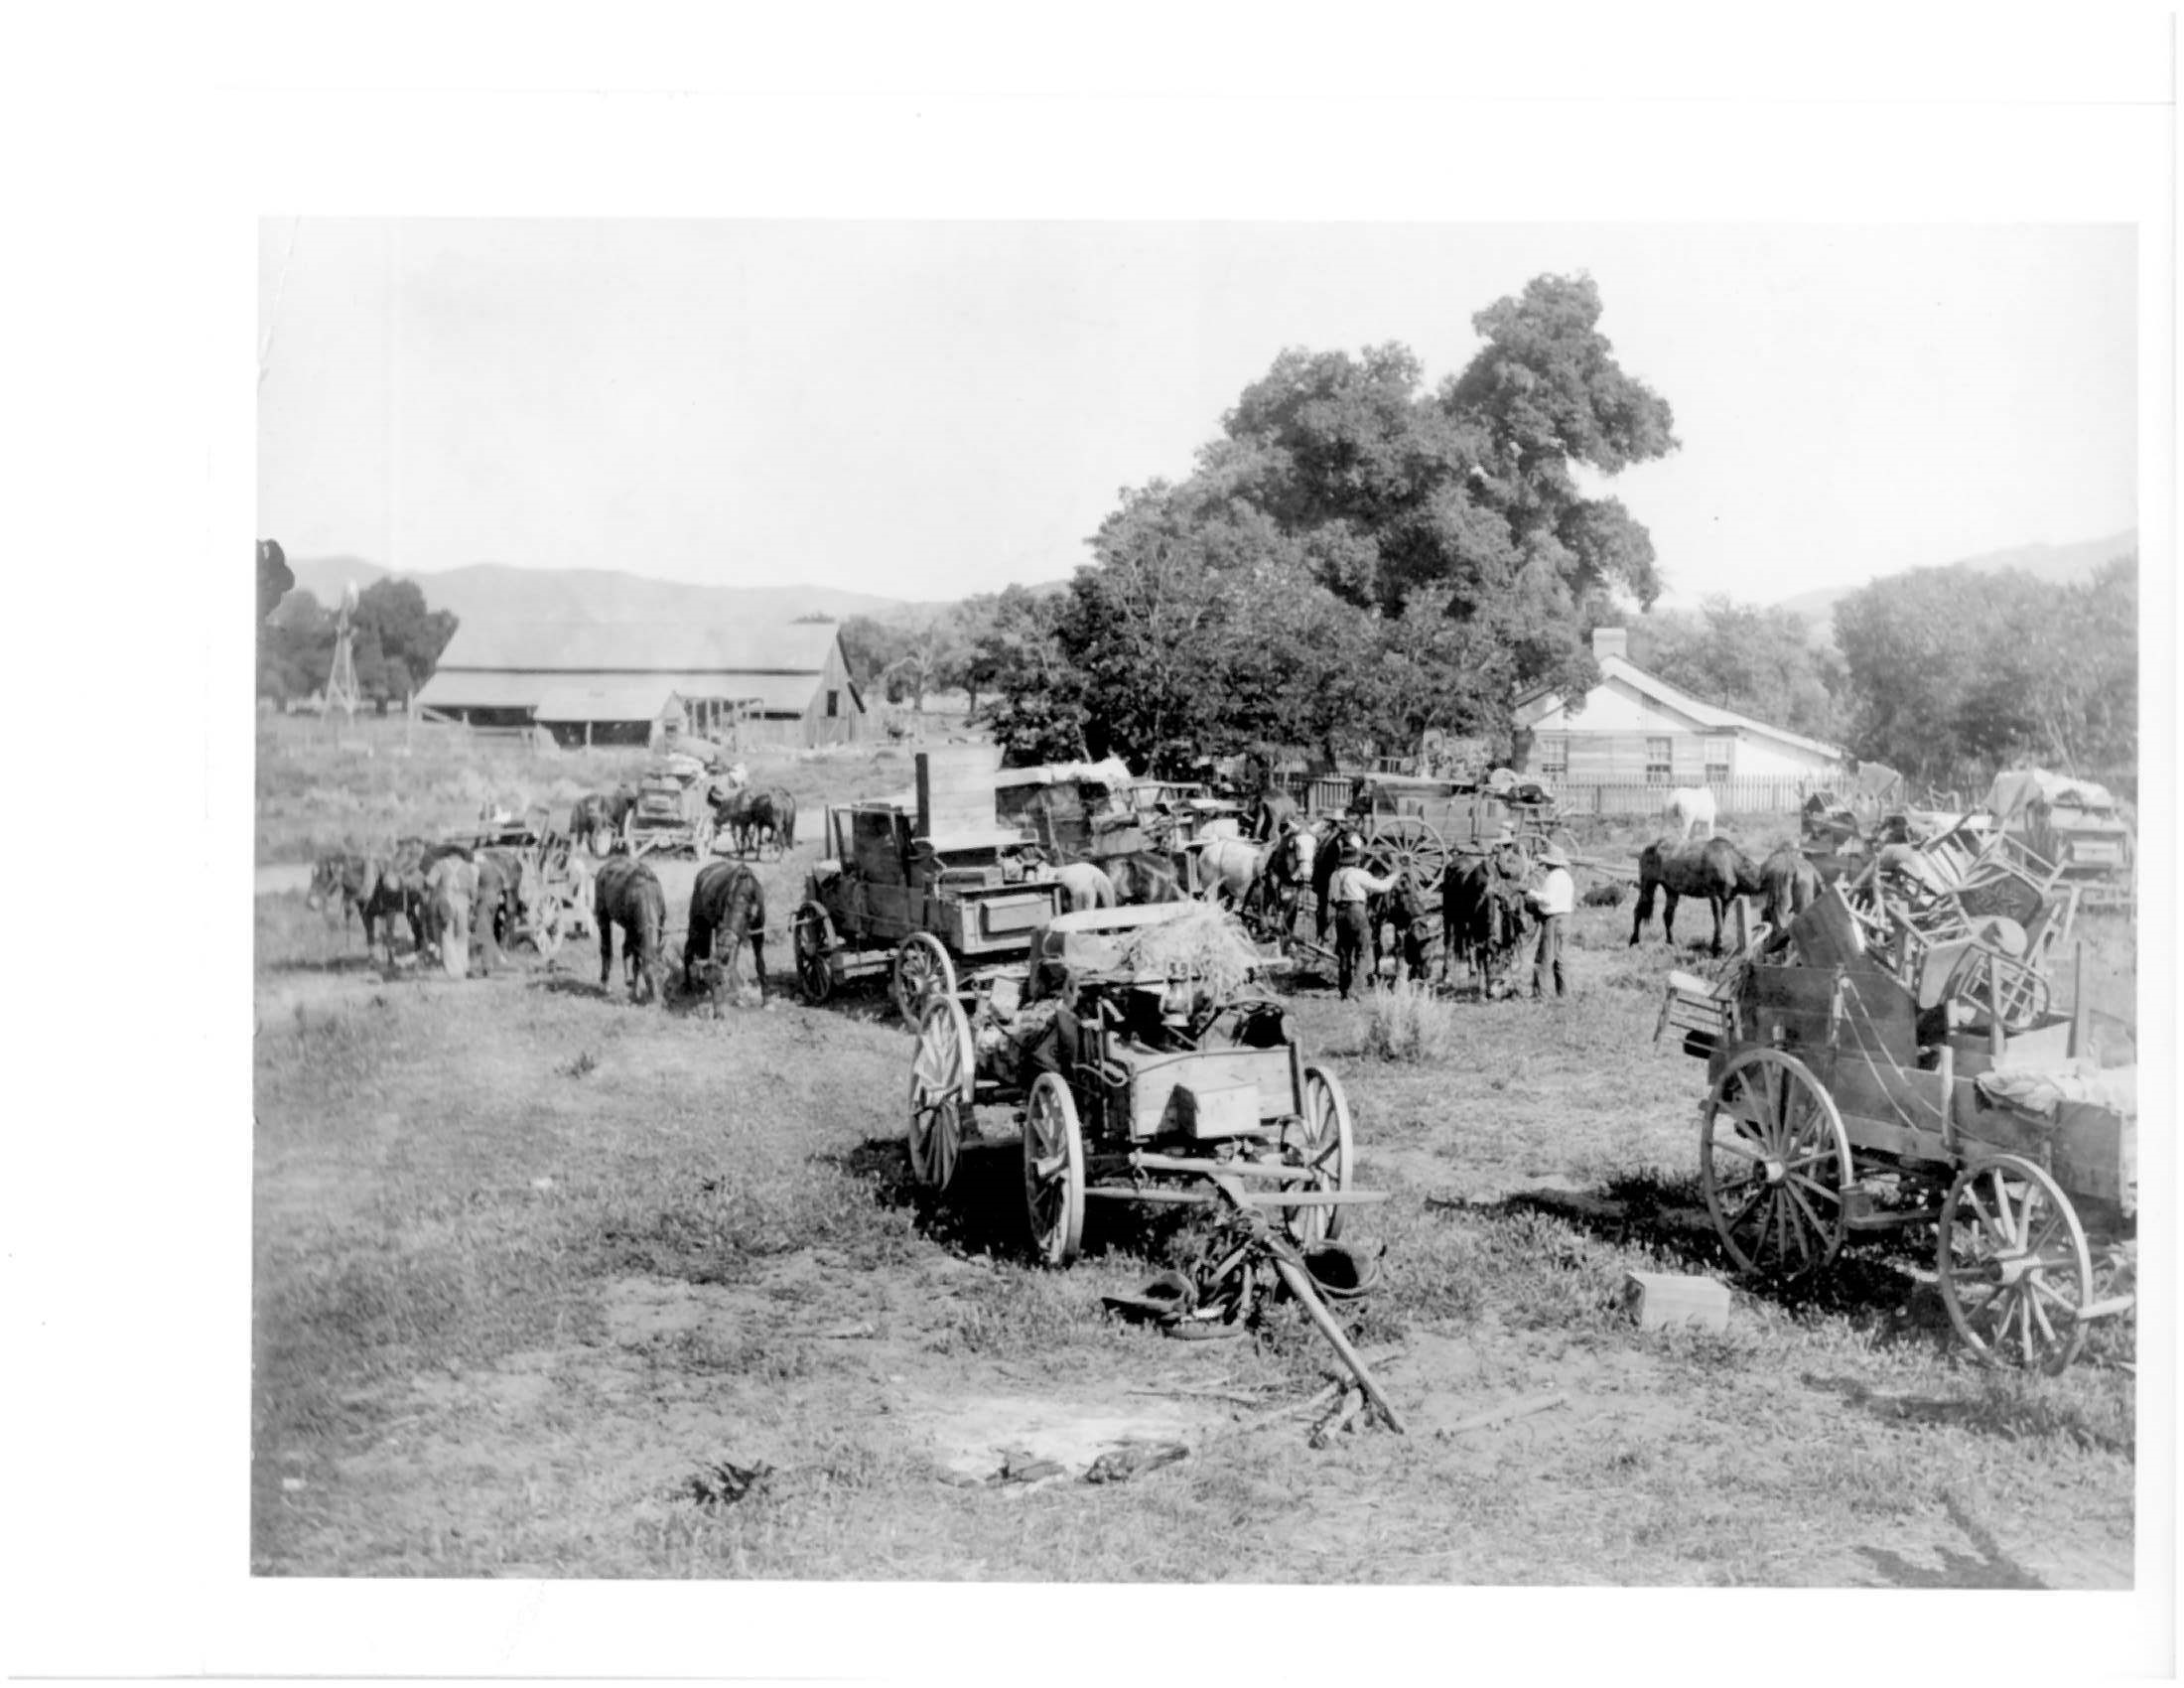 Old photograph of a line of horse- or mule-drawn wagons with shade tree, barn and farmhouse in background